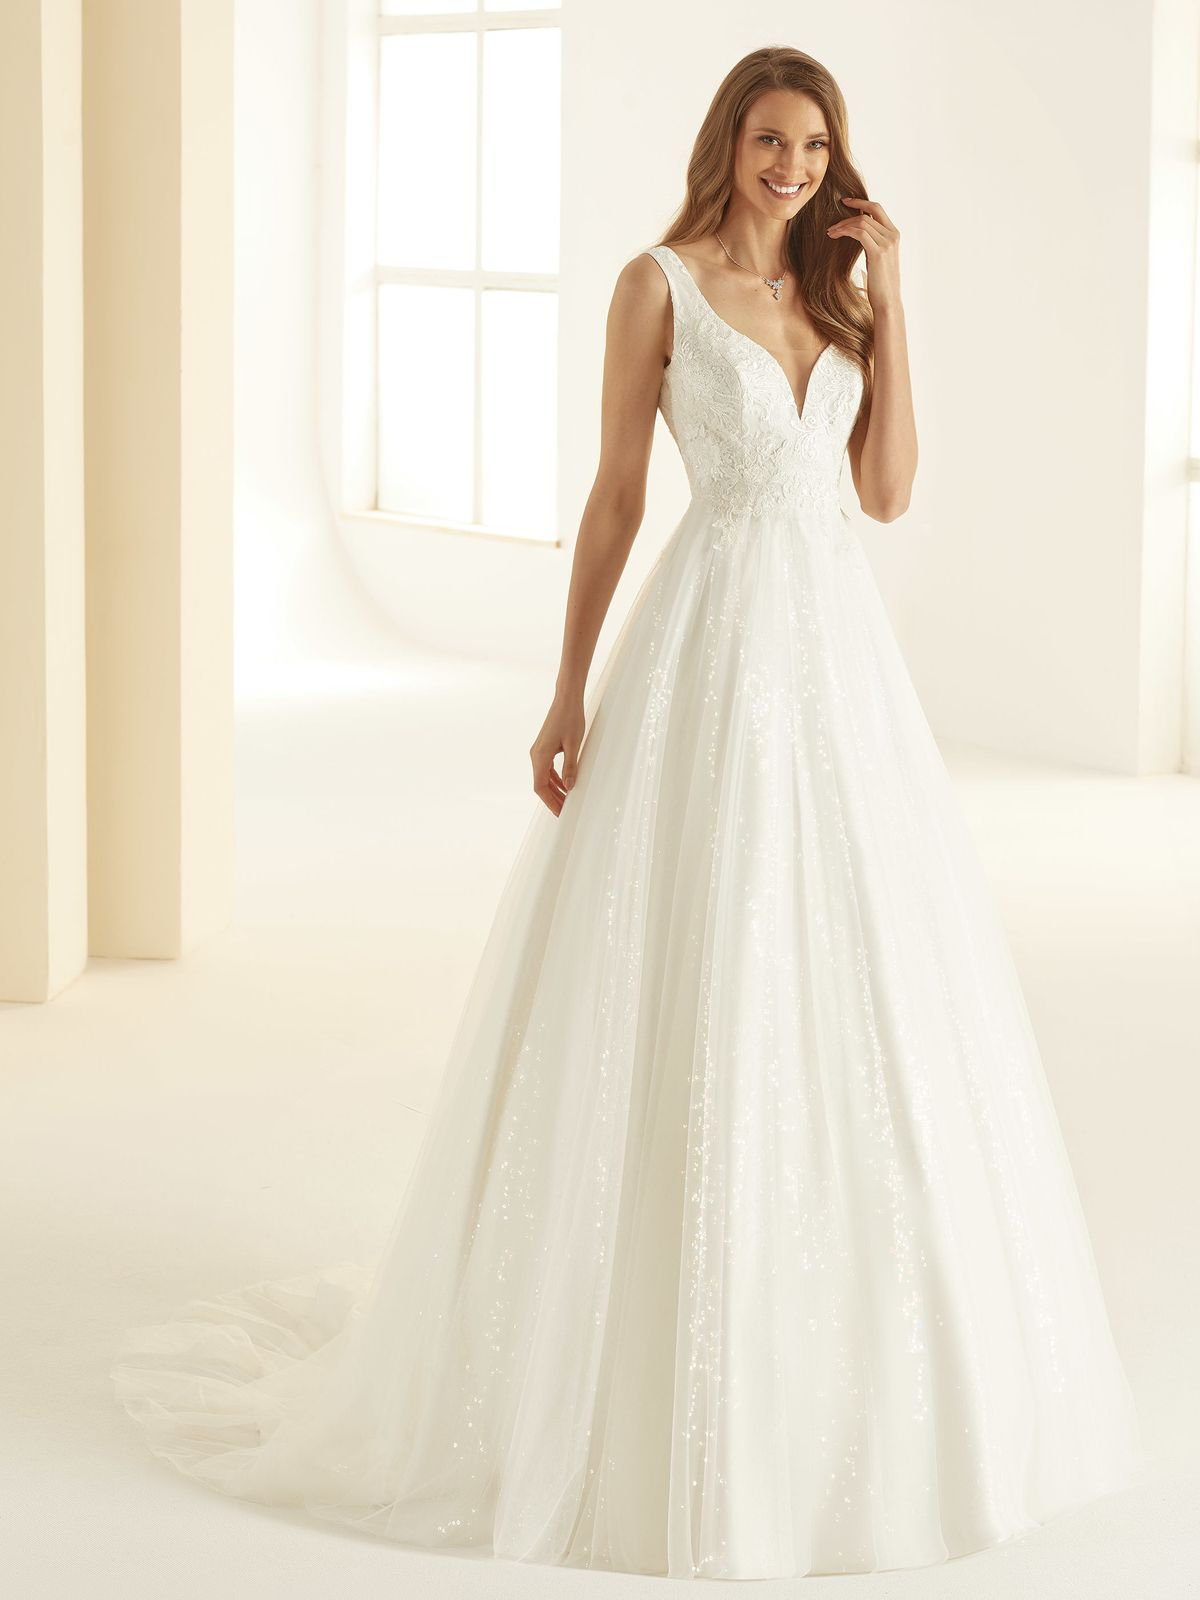 bianco-evento-bridal-dress-larissa-_1__1